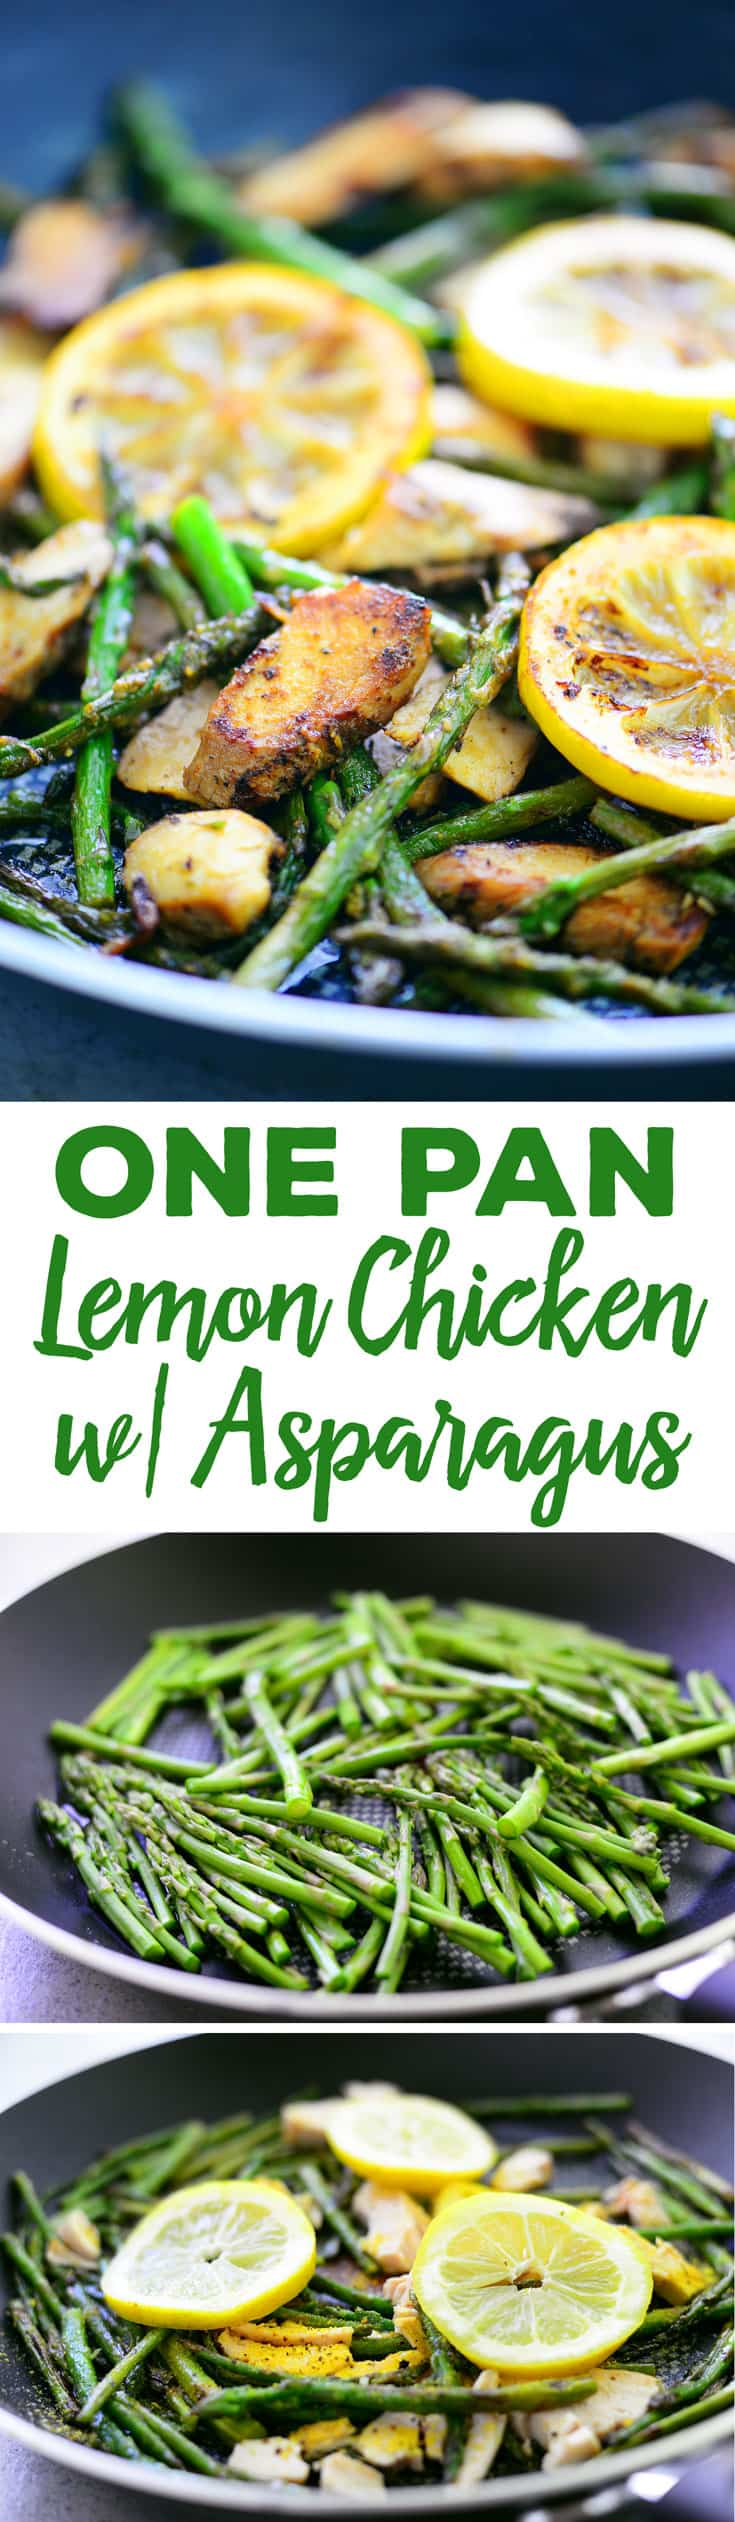 This One Pan Lemon Chicken with Asparagus is full of flavor and done in only 10 minutes! A great way to use leftover chicken or make with rotisserie chicken.